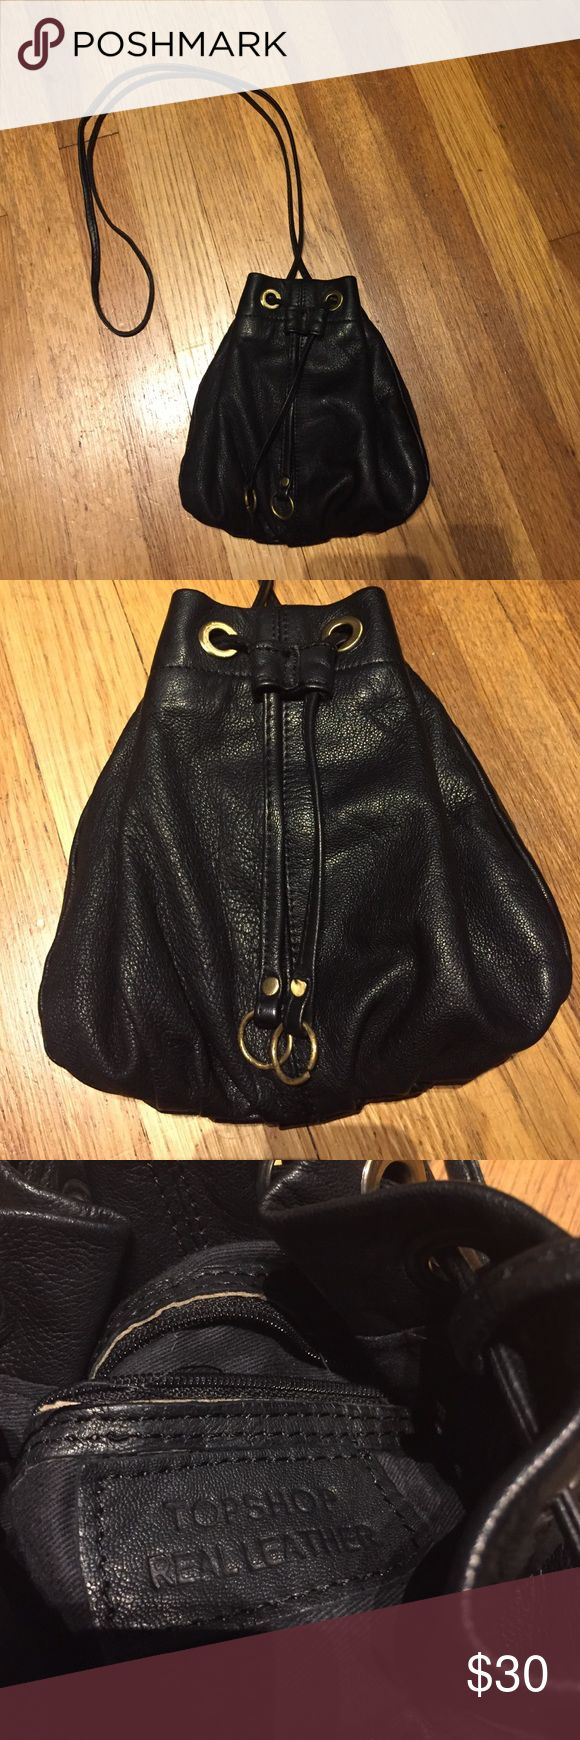 Topshop leather purse Topshop small leather buckle bag that can be worn as a crossbody. Large enough for cell phone, a bit of makeup, and small wallet. Perfect for dancing on friday nights! Cinches closed with one internal zipper pocket. Topshop Bags Mini Bags